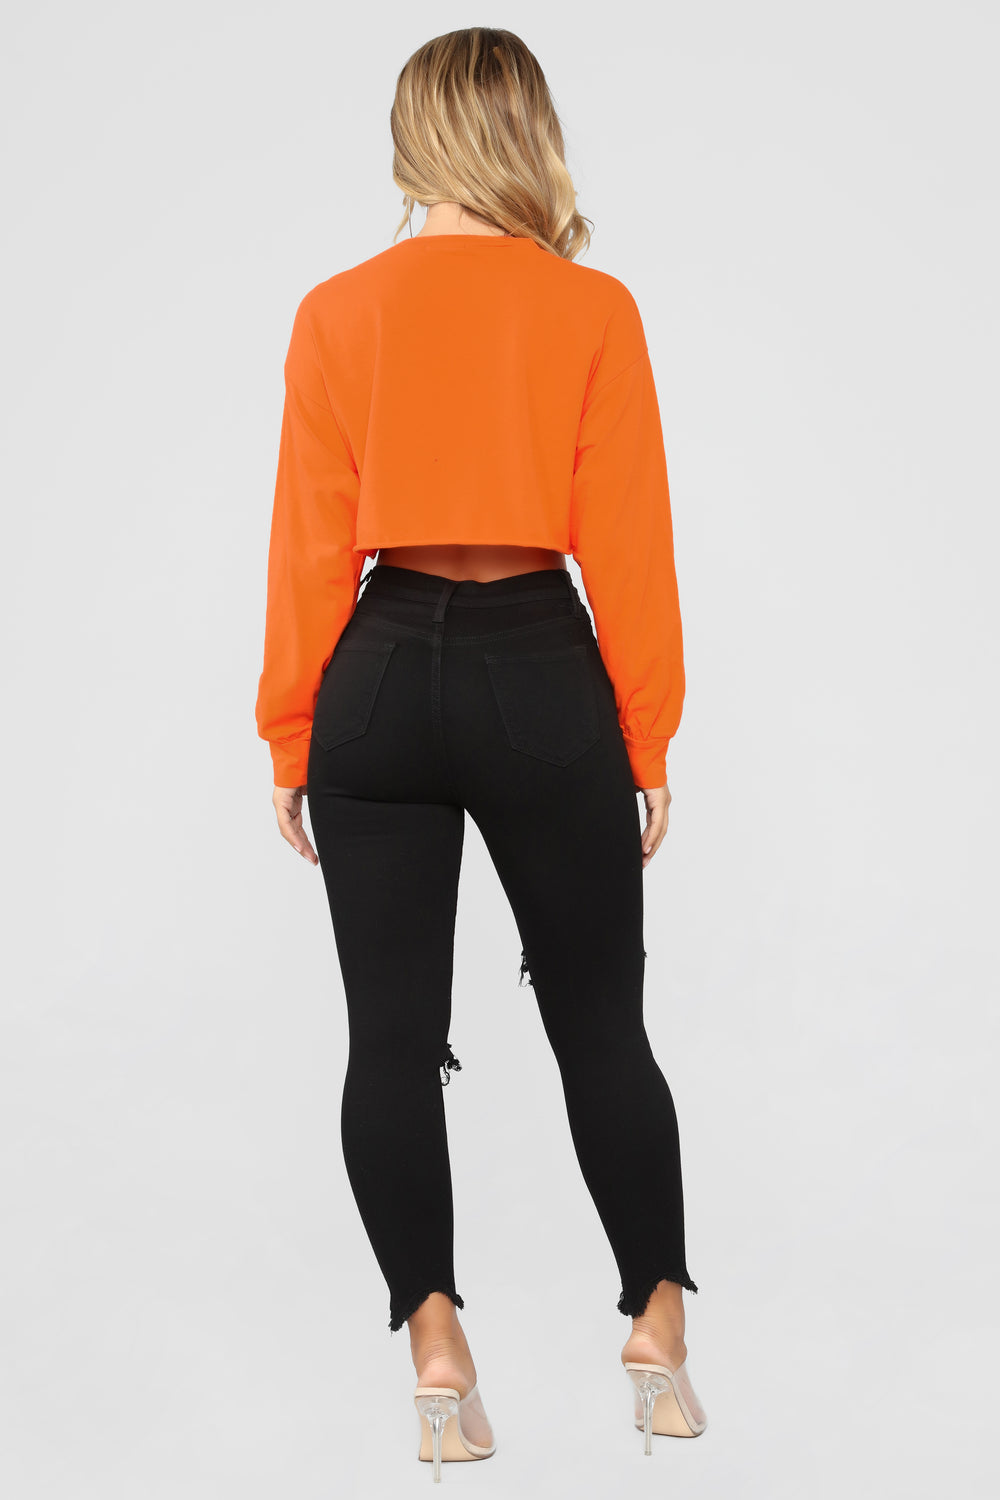 Playhard Long Sleeve Crop Top - Orange